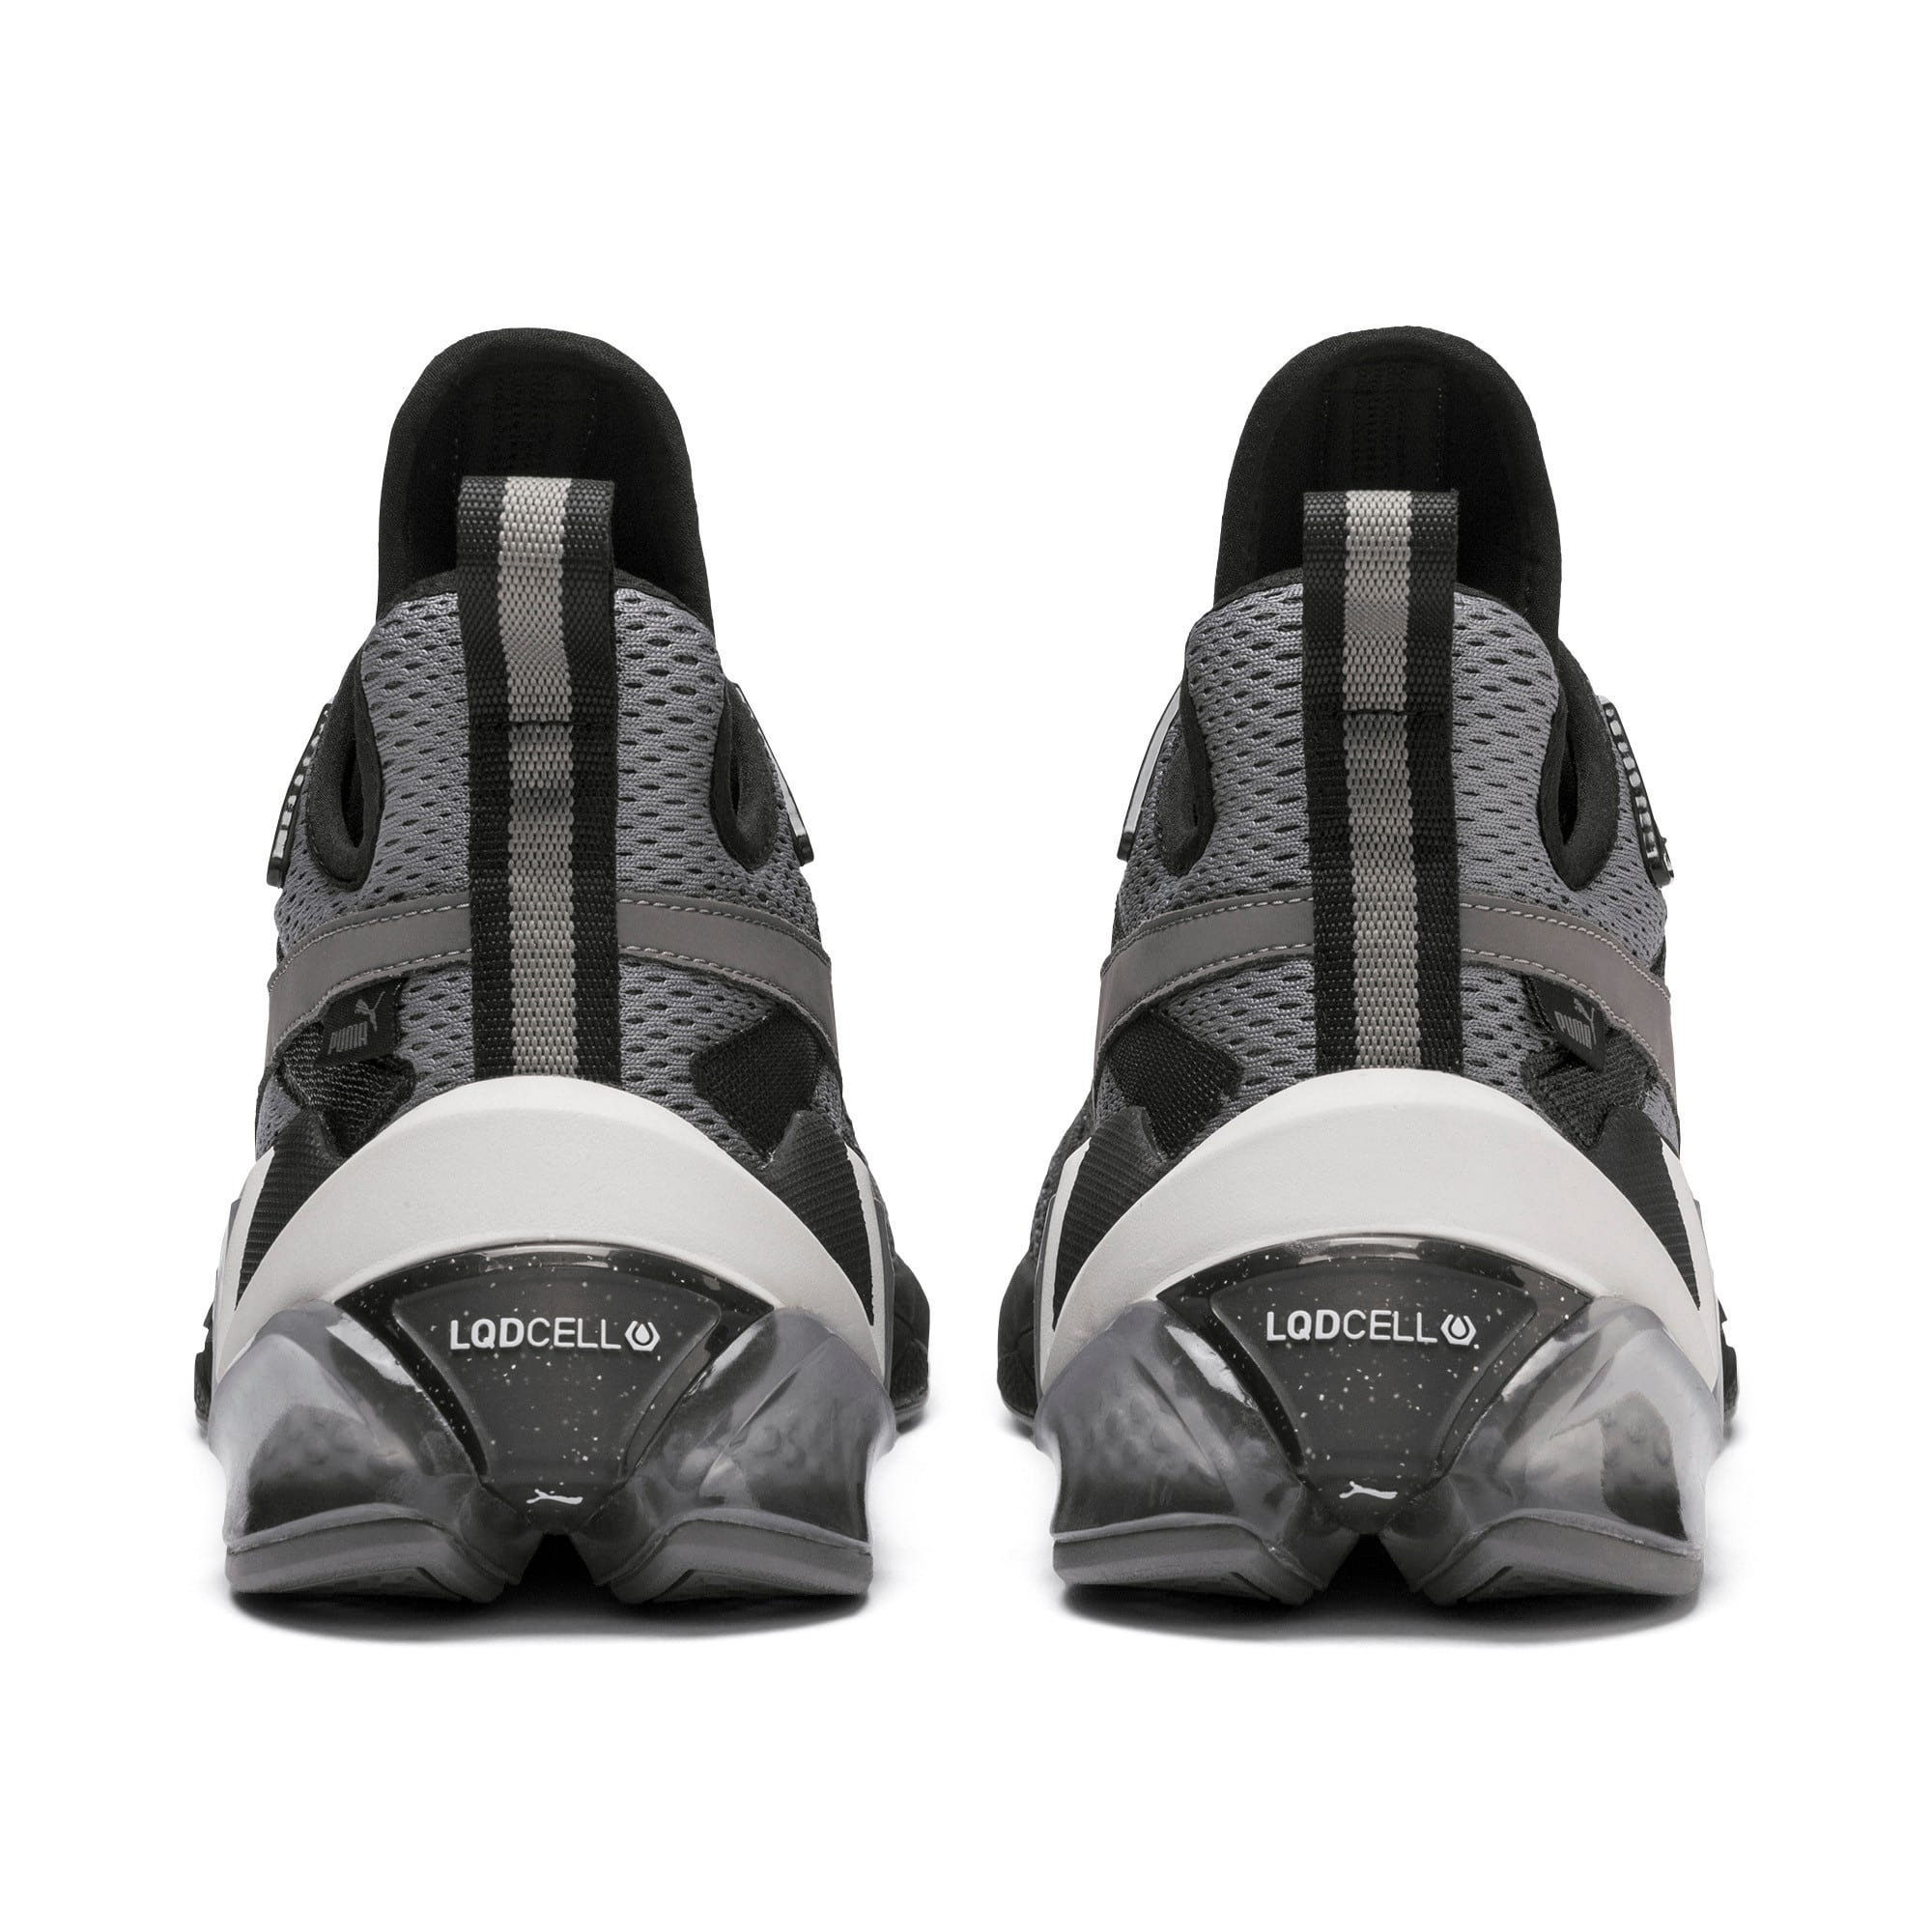 Thumbnail 4 of LQDCELL Origin Tech Herren Trainingsschuhe, Puma Black-CASTLEROCK, medium